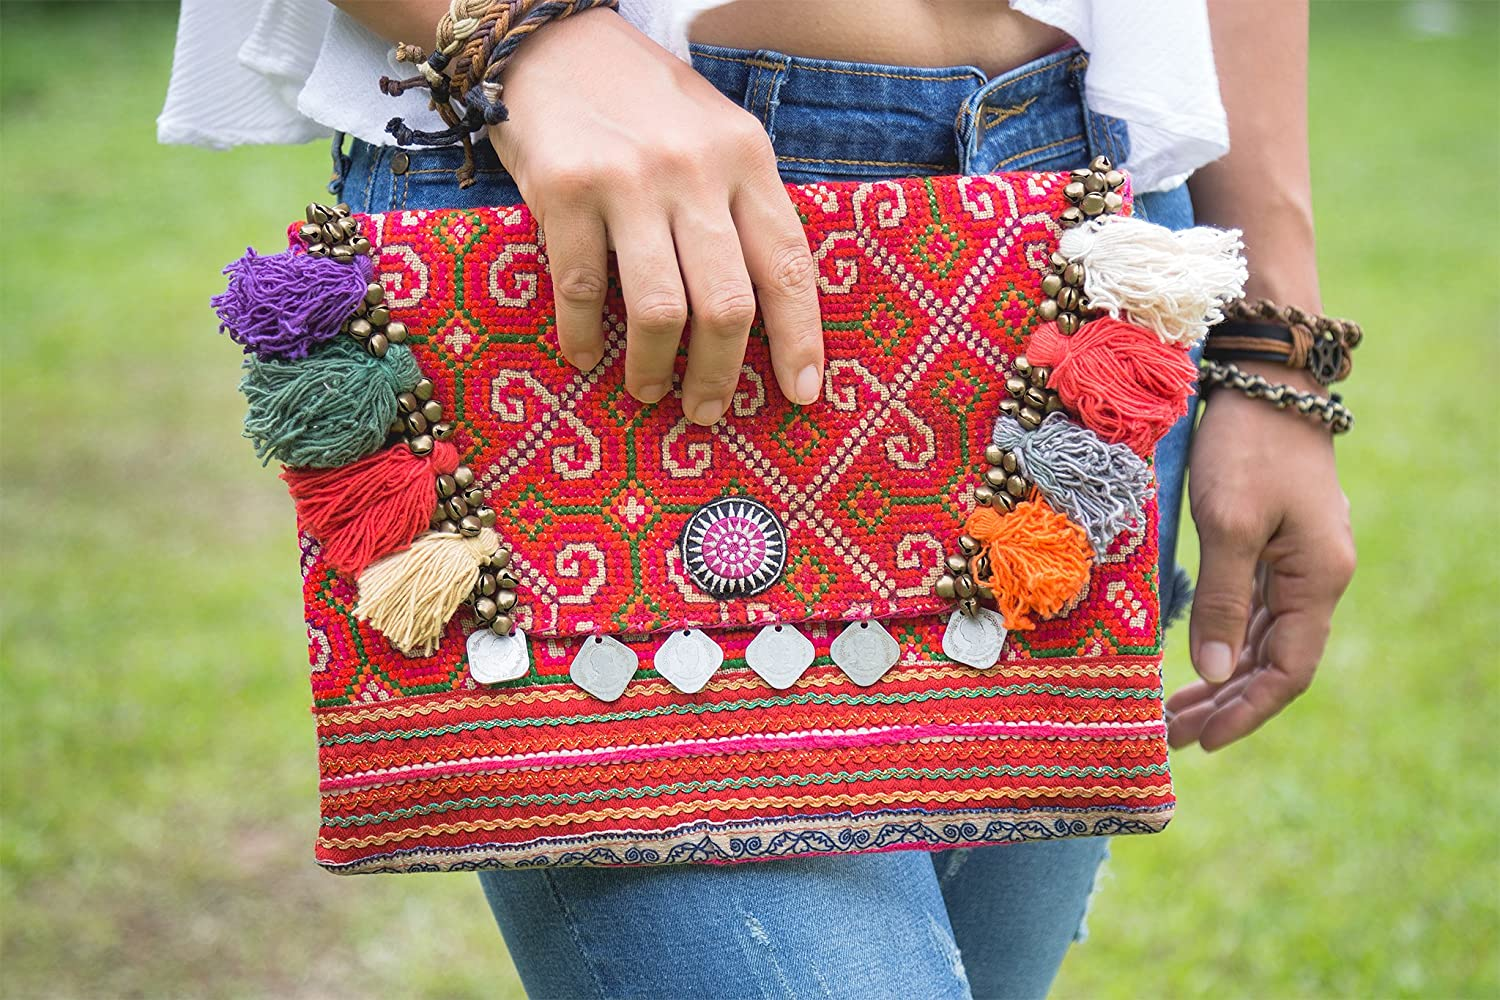 Changnoi Bohemian Clutch Bag Handmade Vintage Hmong Embroidered Pom Poms Fair Trade